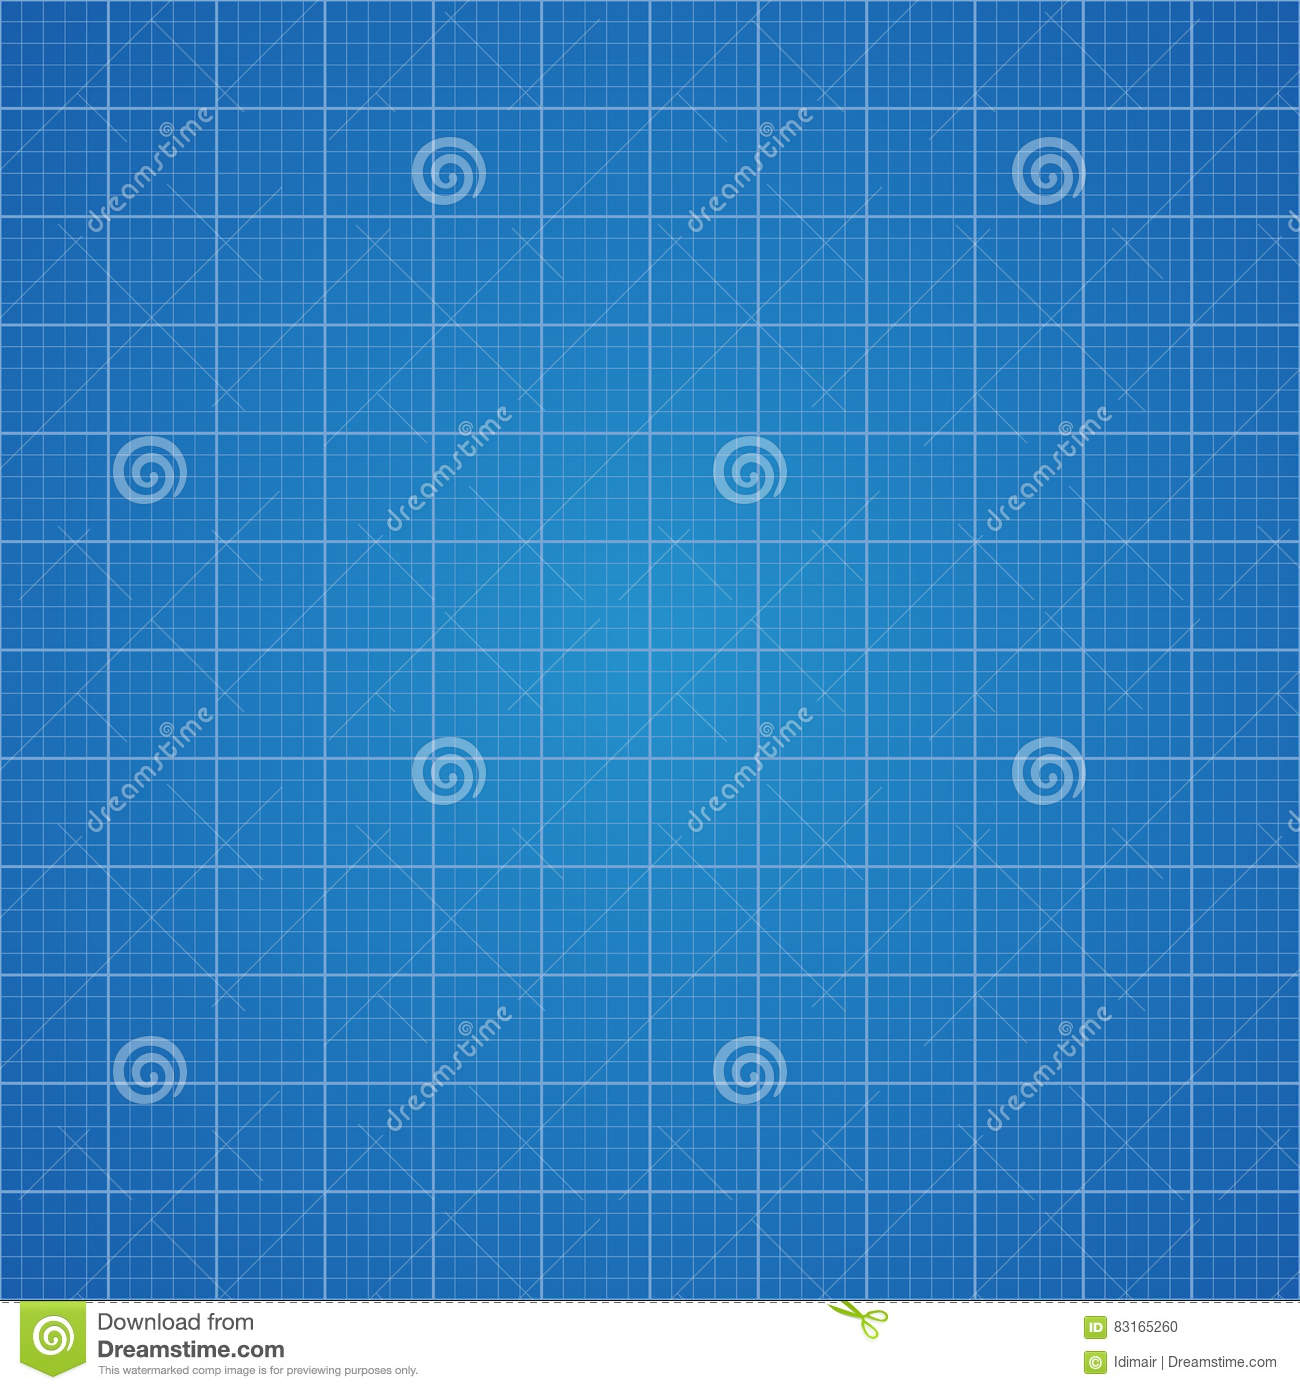 Blueprint grid background graphing paper for engineering in vector download blueprint grid background graphing paper for engineering in vector stock vector illustration of malvernweather Images